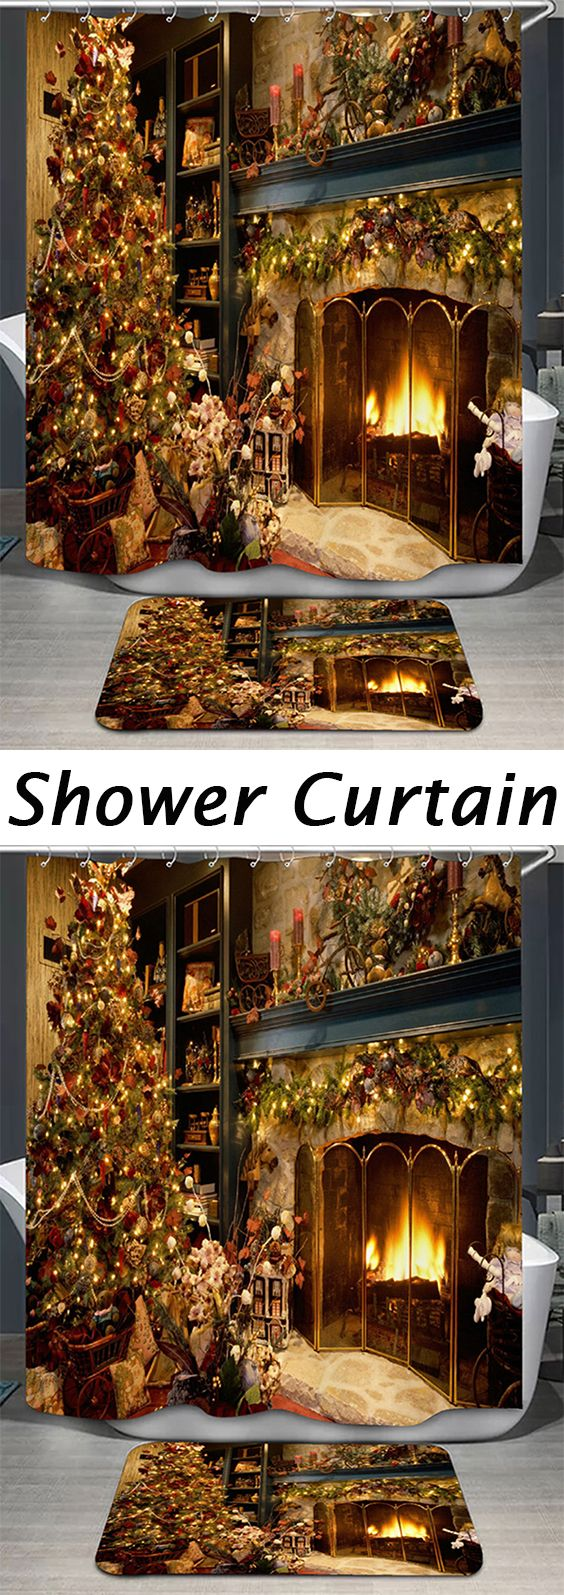 Highly Recommend it,50% OFF Christmas Shower Curtains,Free Shipping Worldwide.